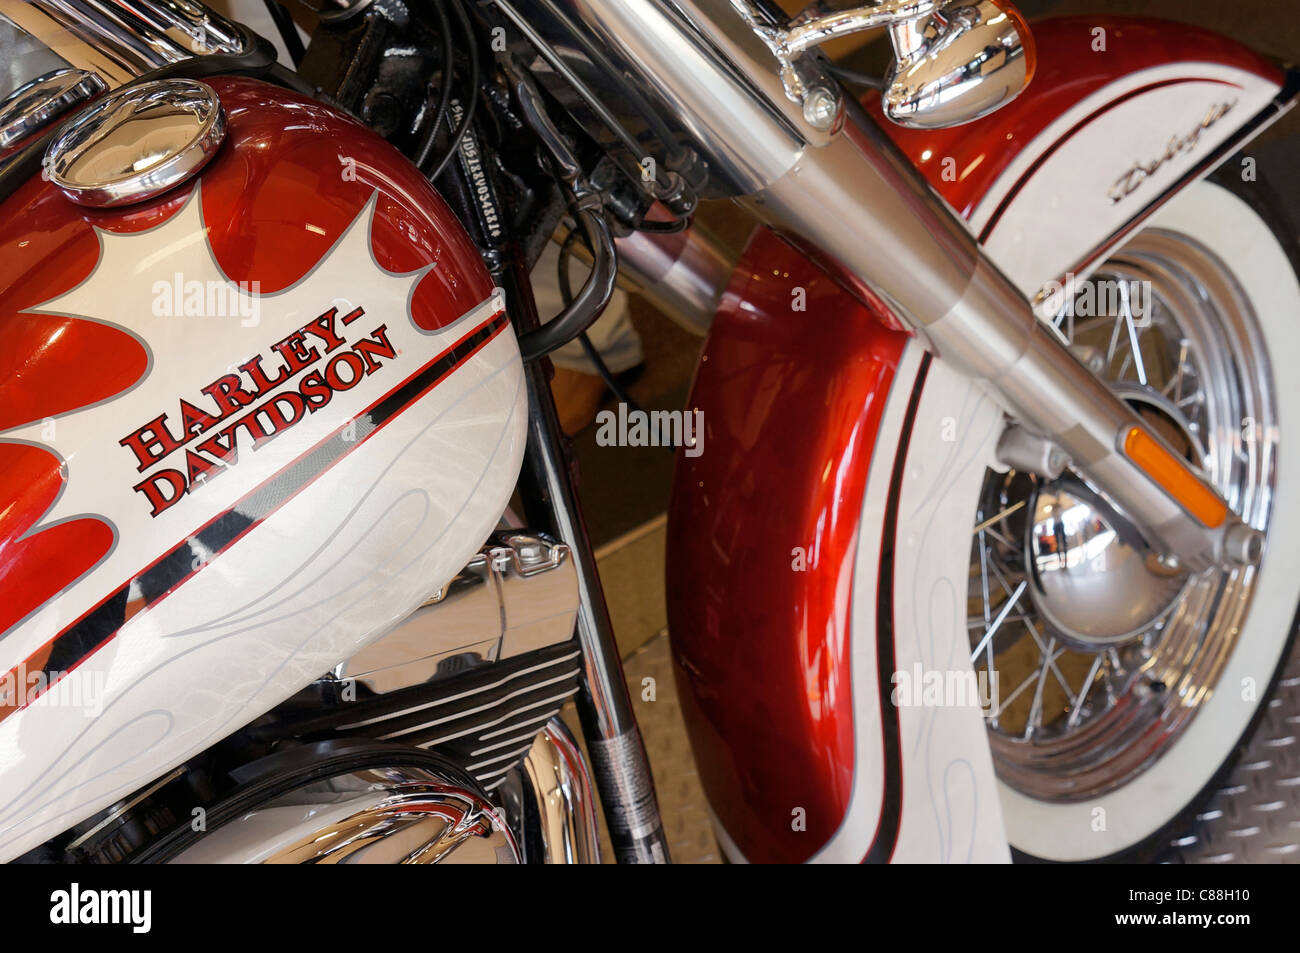 Closeup of Harley Davidson Motorcycle - Stock Image